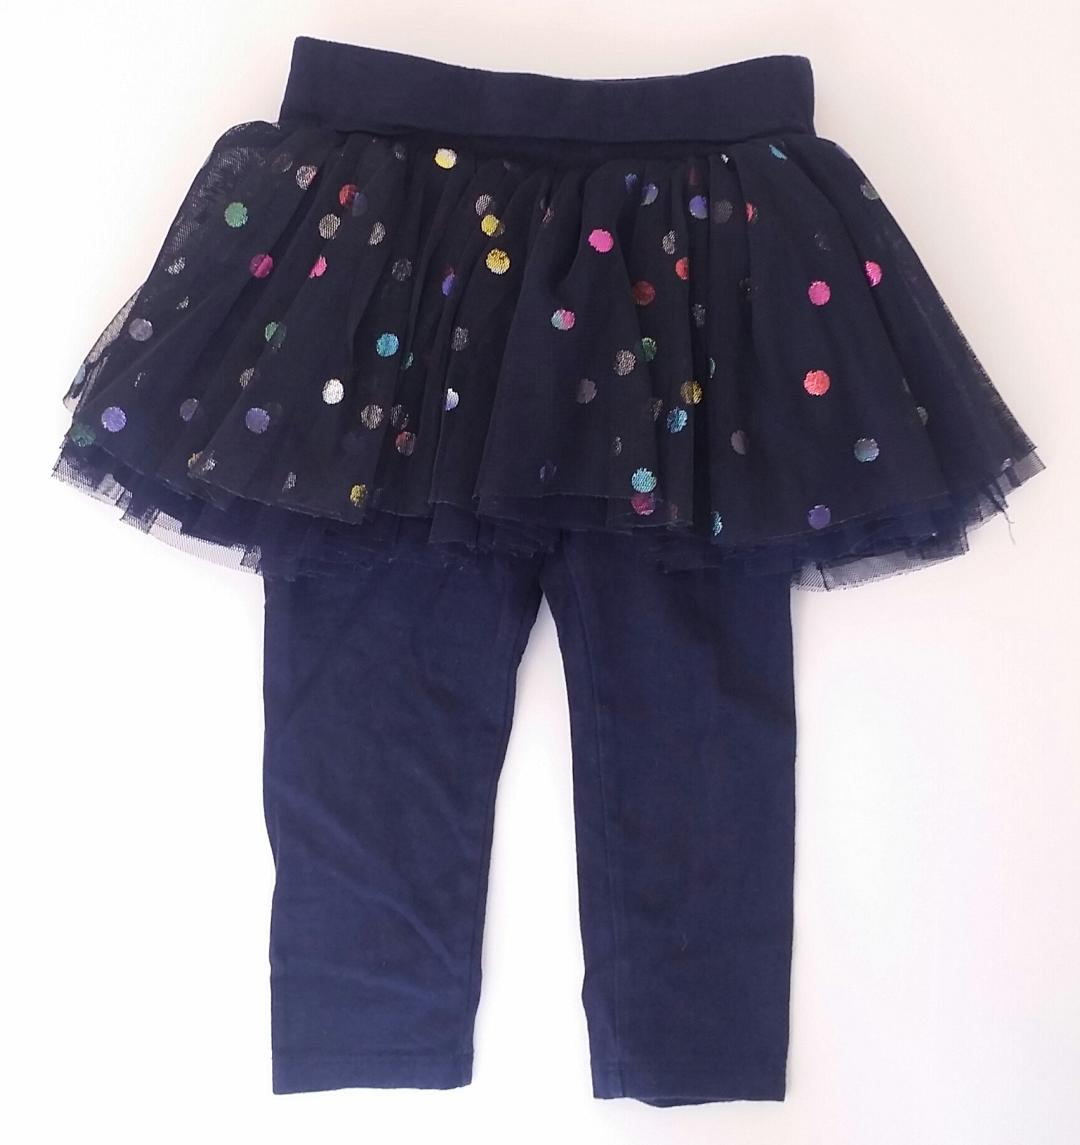 Gap-12-18-MONTHS-Tulle-Pants_2146527A.jpg